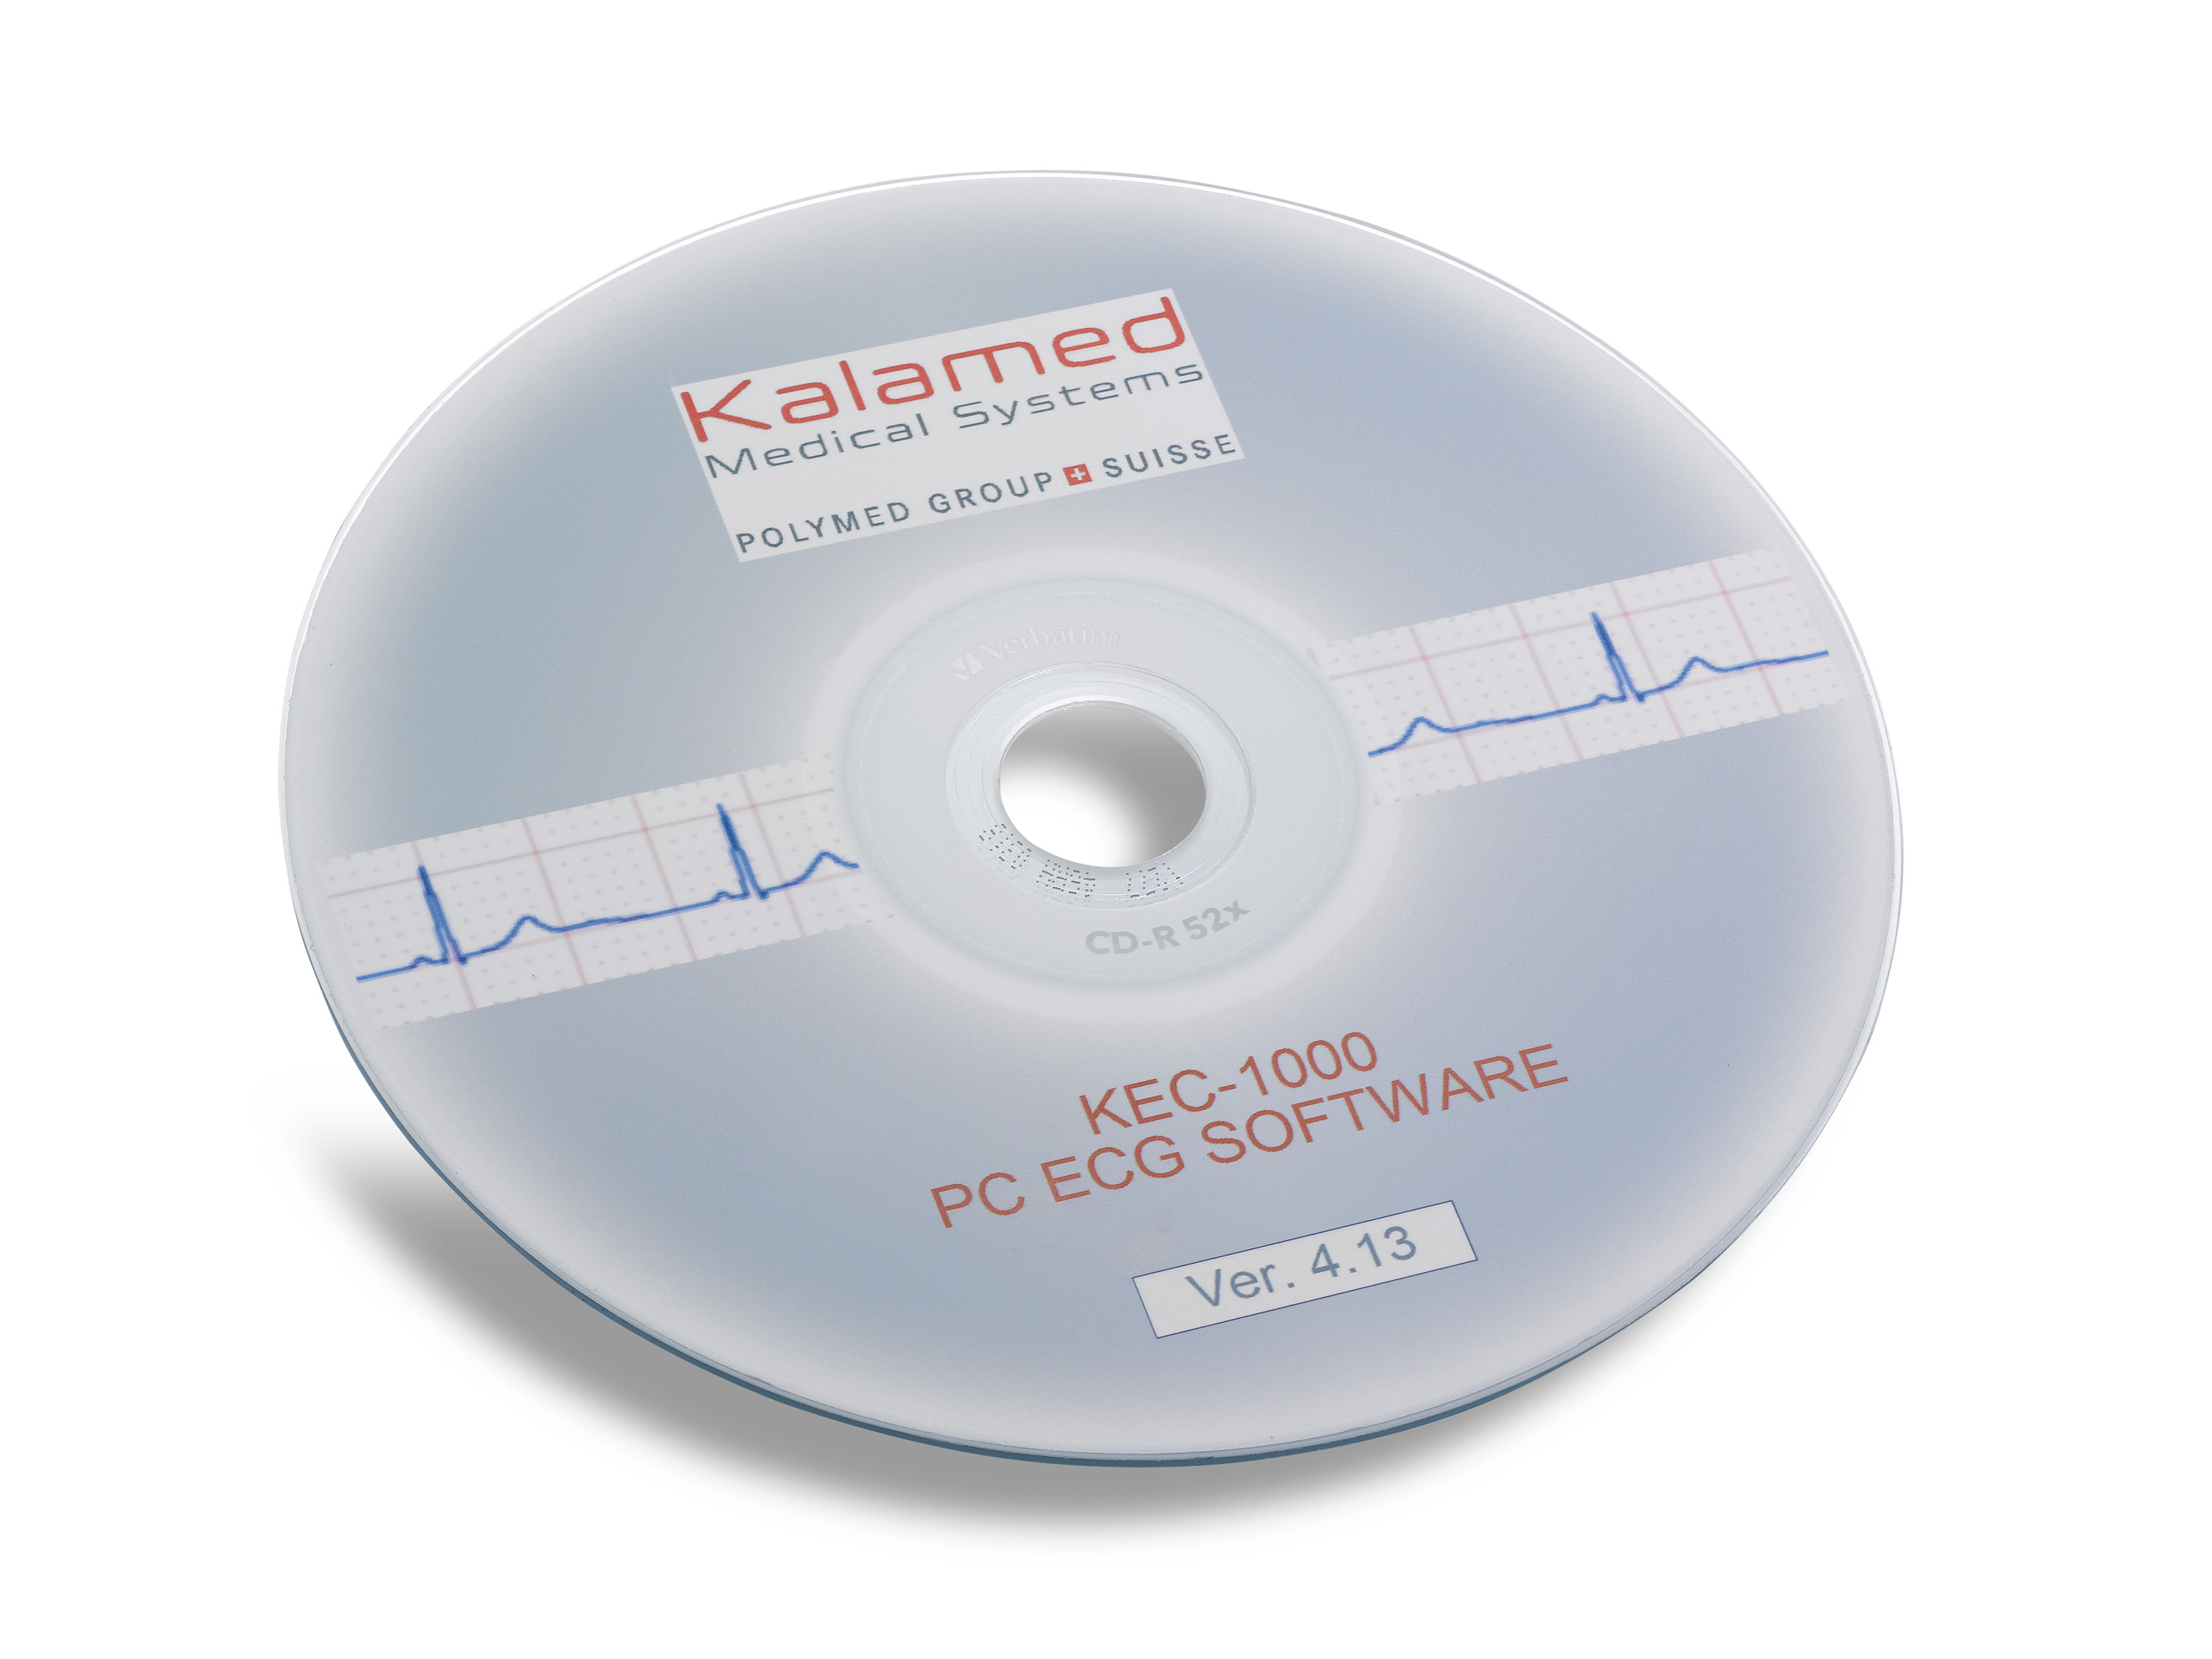 KEC1000-patient-monitor-software - Supplier of Medical